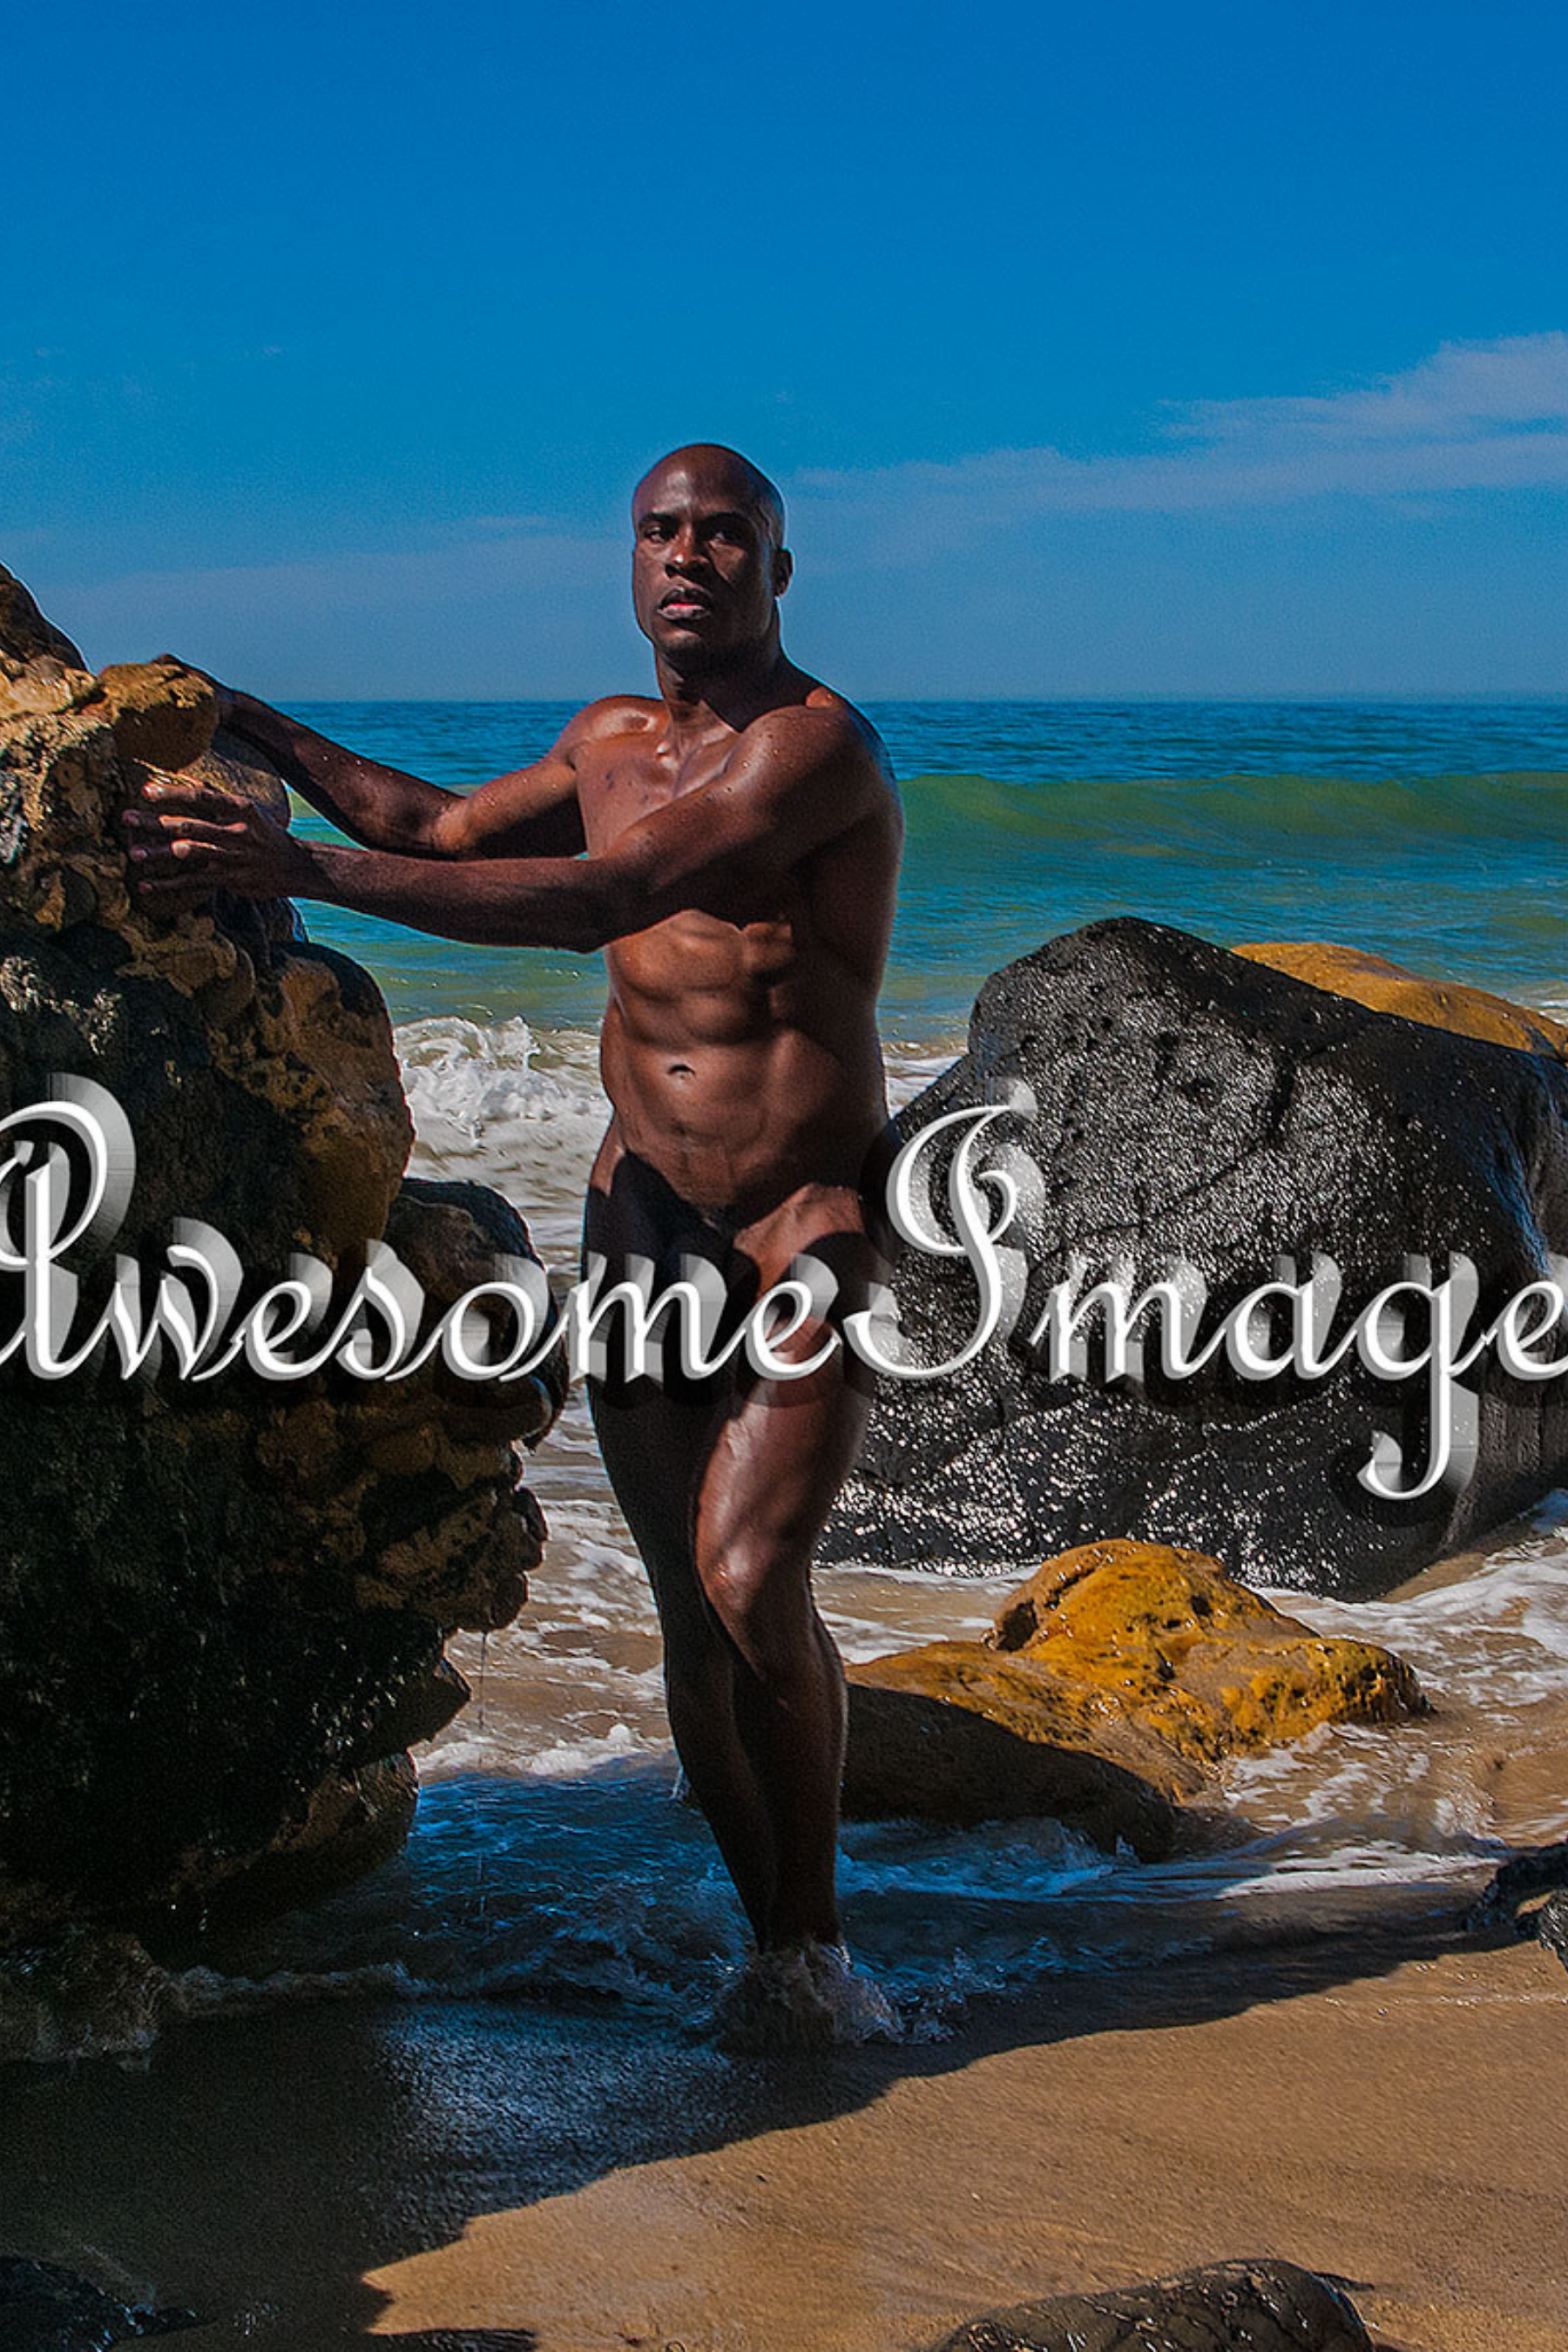 © Al George / Awesome Images Photography